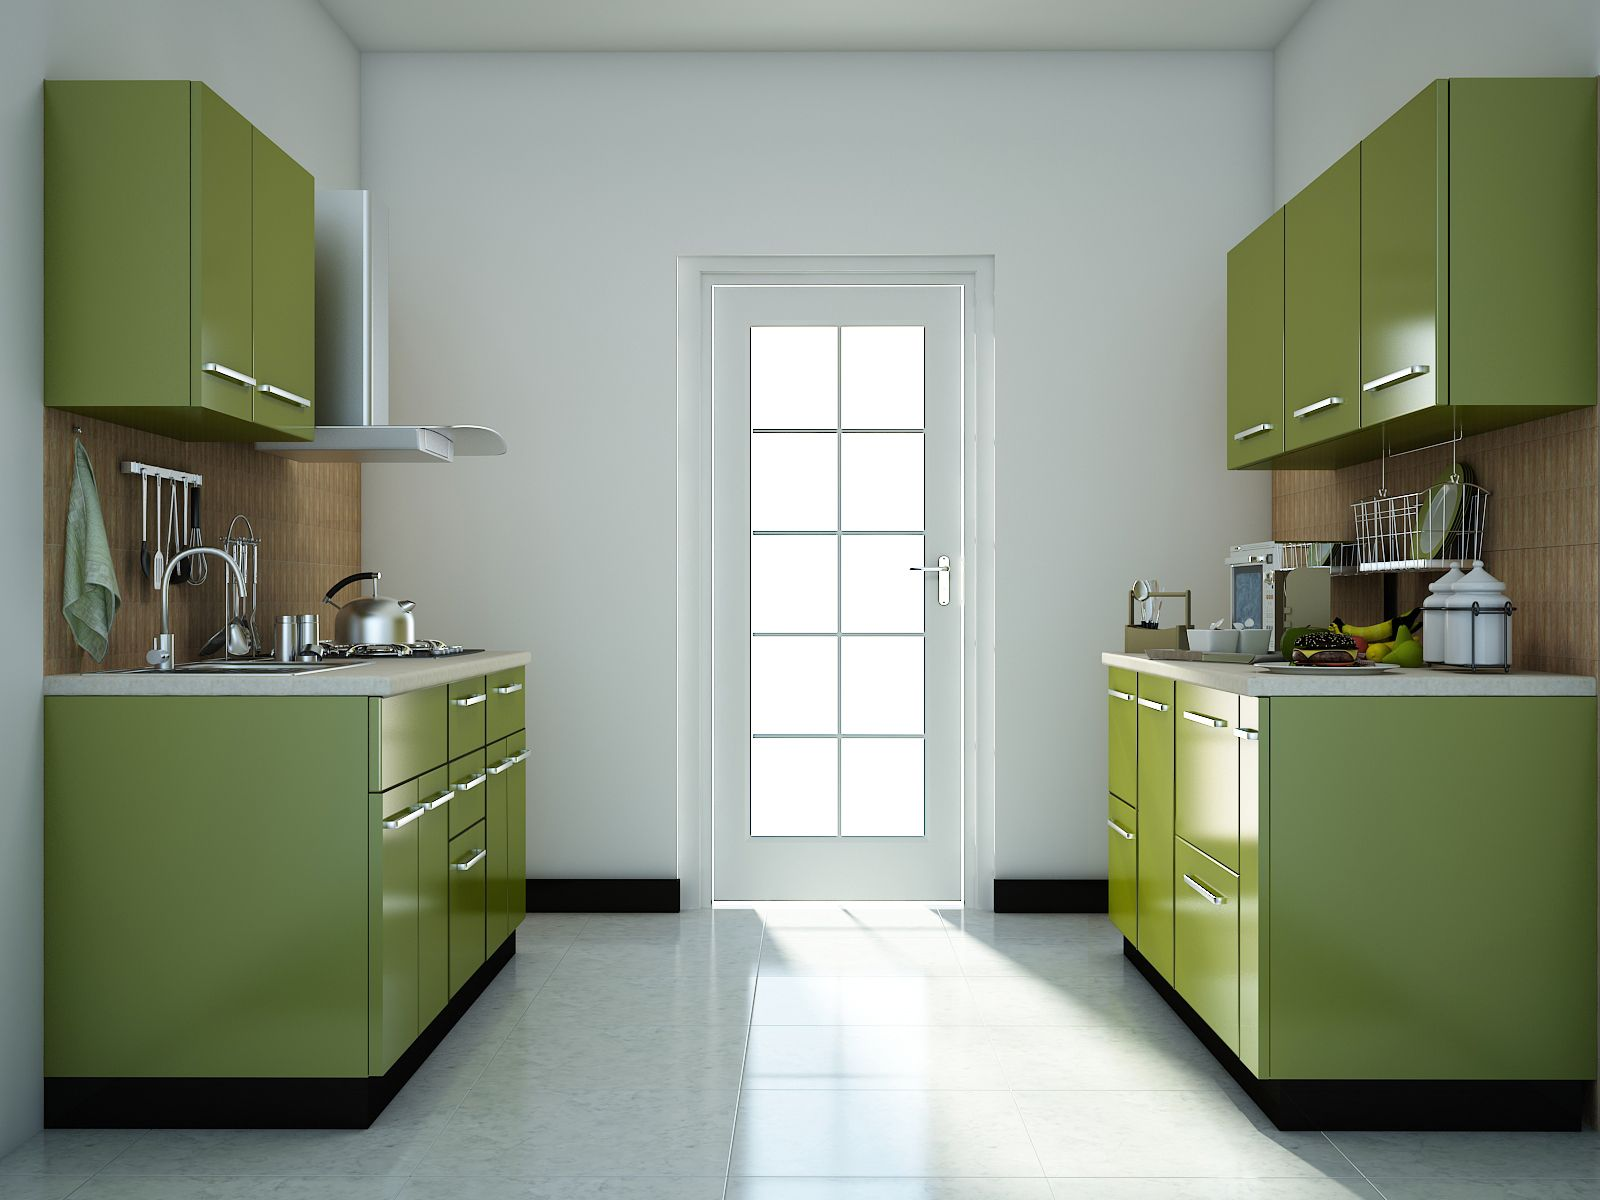 Green modular kitchen designs | Parallel shaped Modular kitchen ...